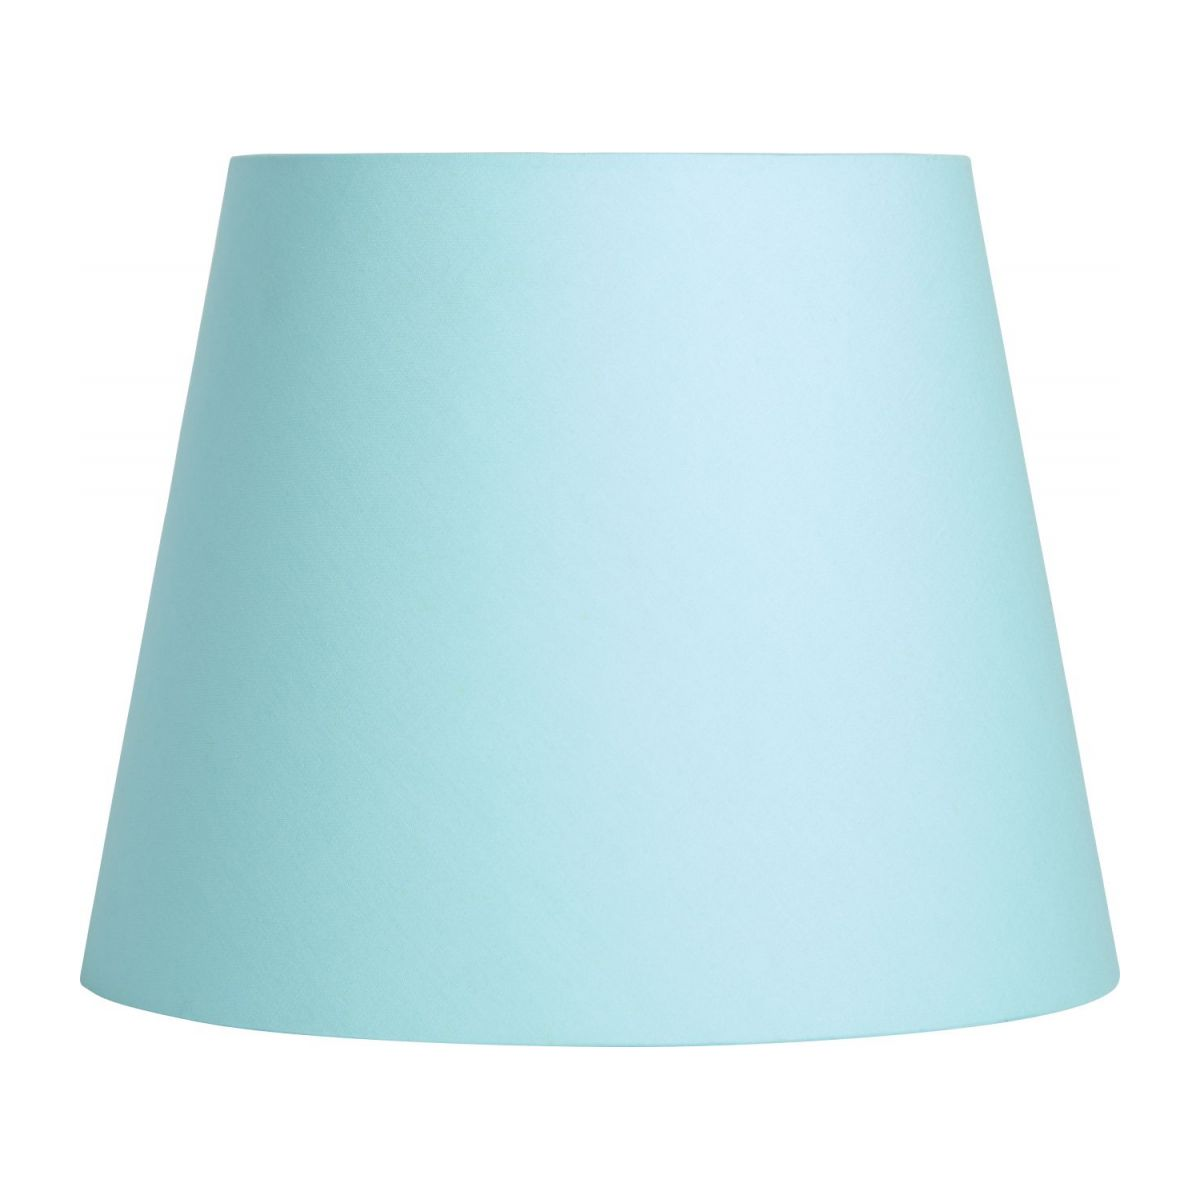 Large blue lampshade n°2